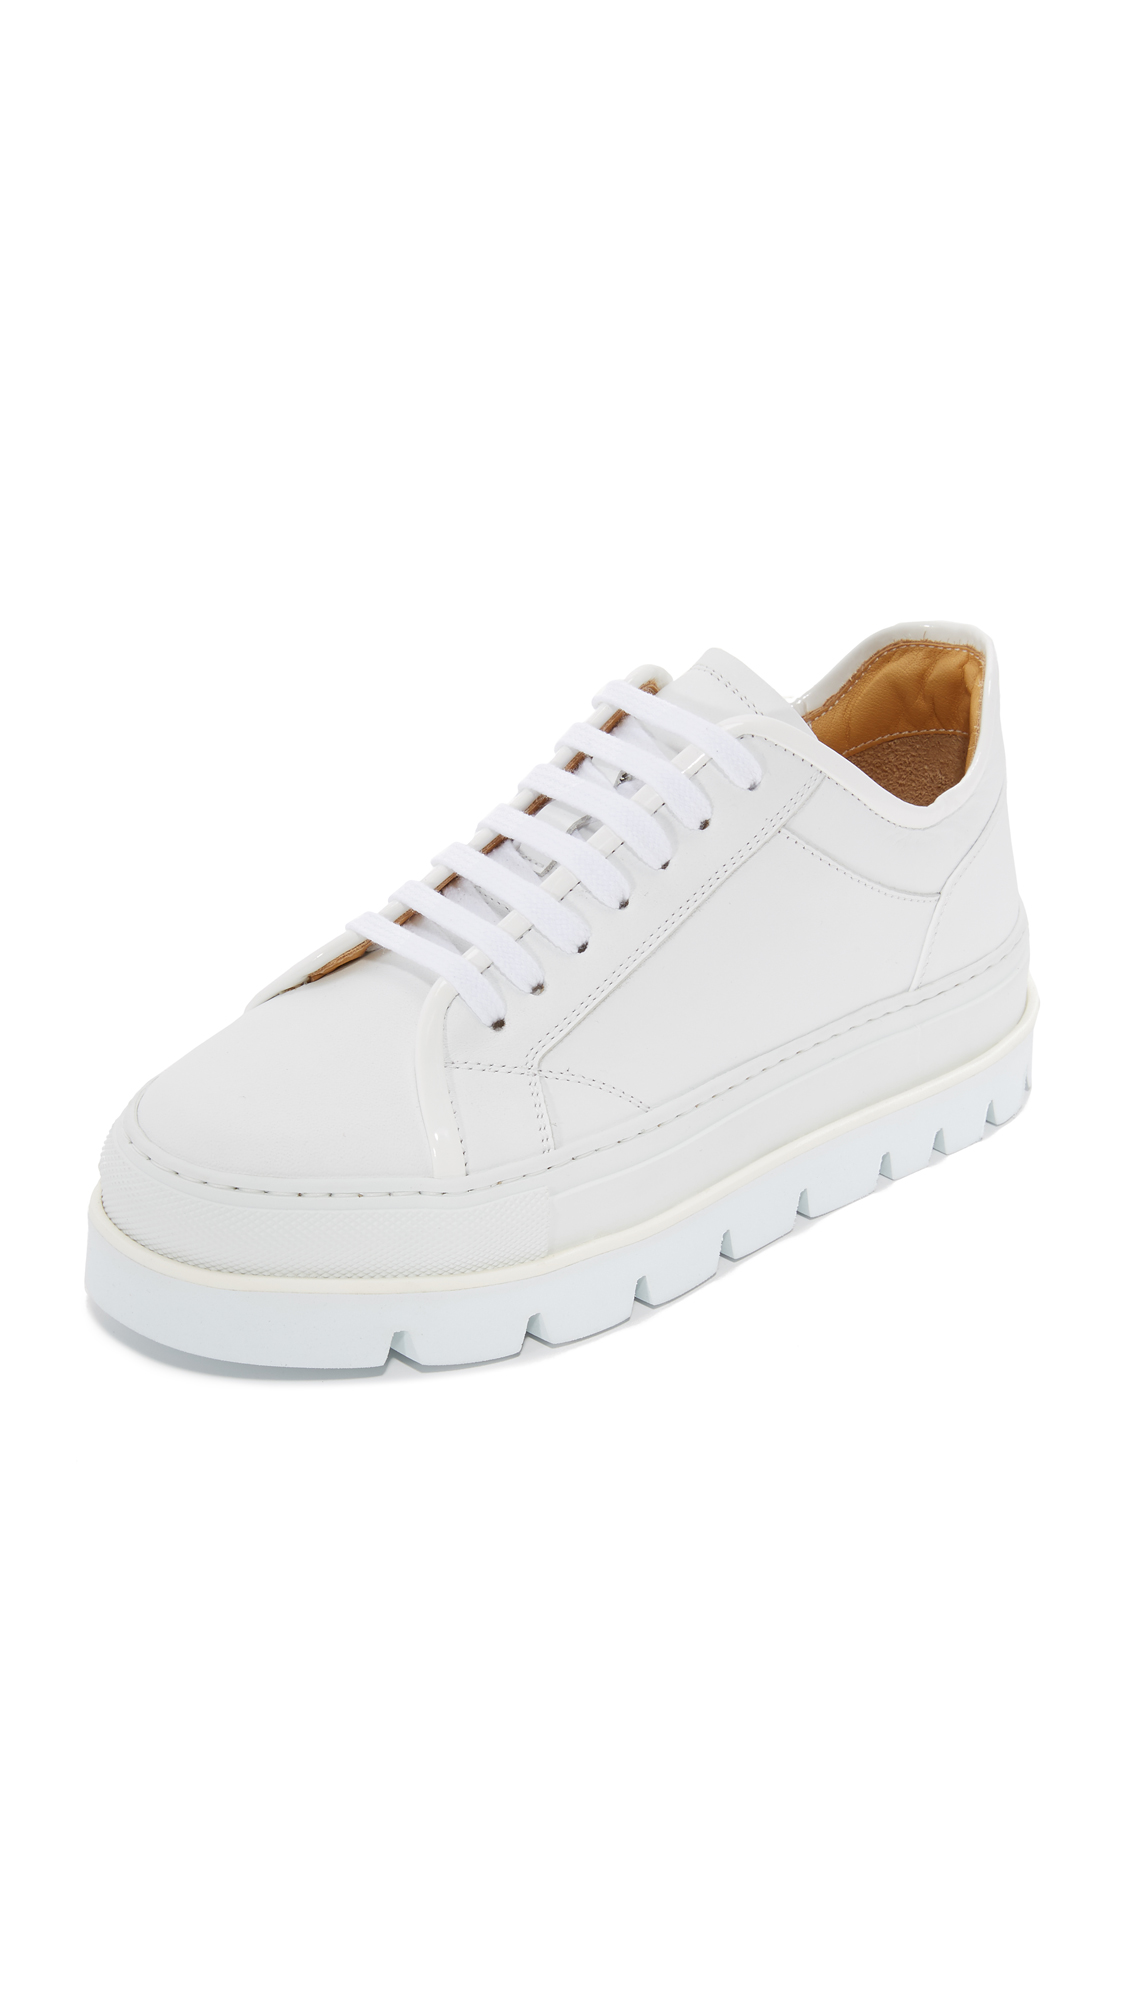 A tiered platform made of foam and rubber adds a substantial lift to these sturdy leather MM6 sneakers. Patent trim at the top line. Lace up closure. Rubber sole. Leather: Calfskin. Made in Italy. This item